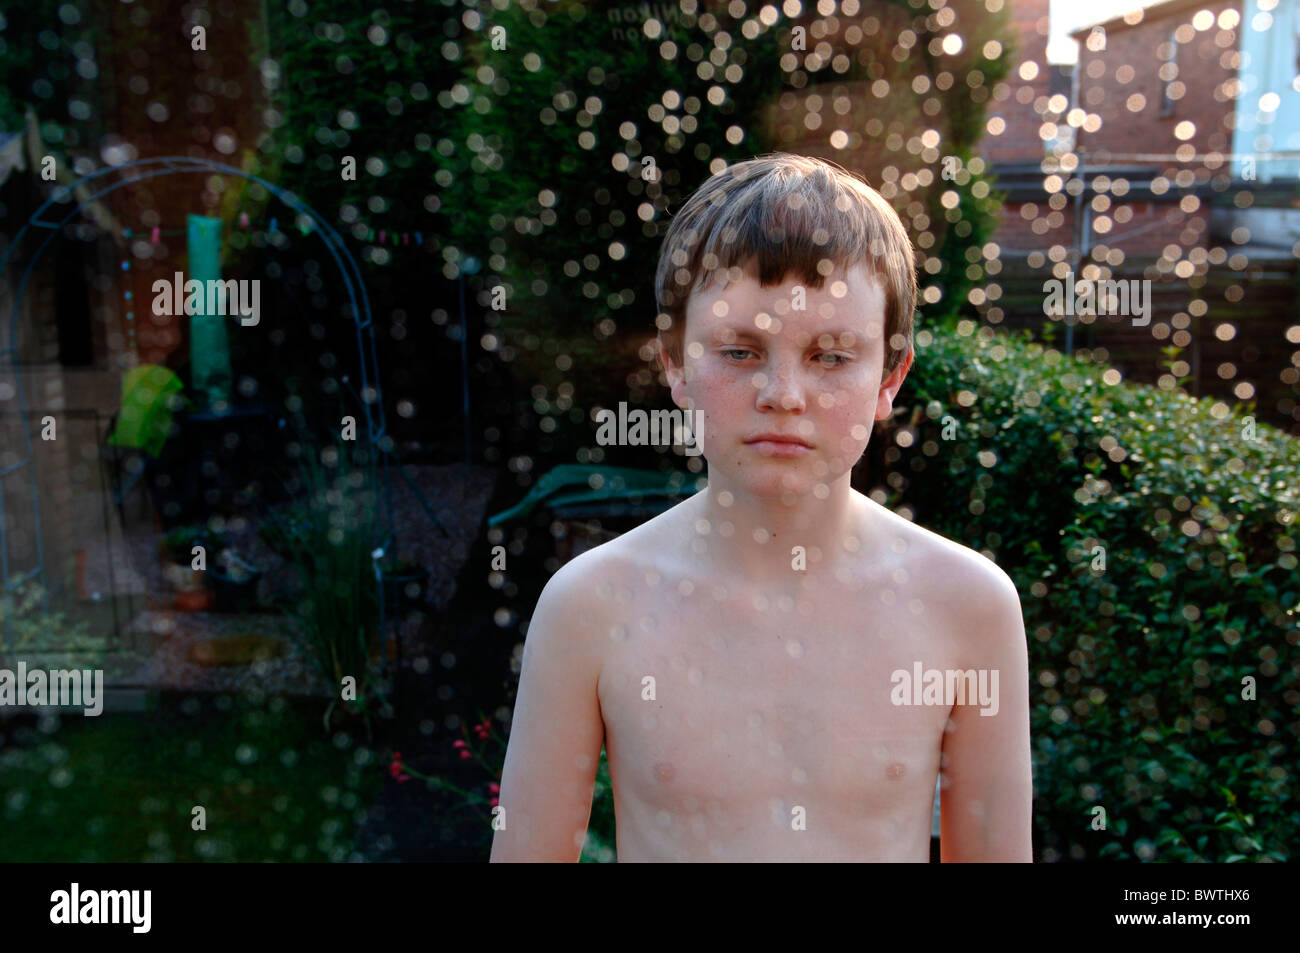 A 14yr Old Boy Standing In Front Of Rain Speckled Glass. - Stock Image